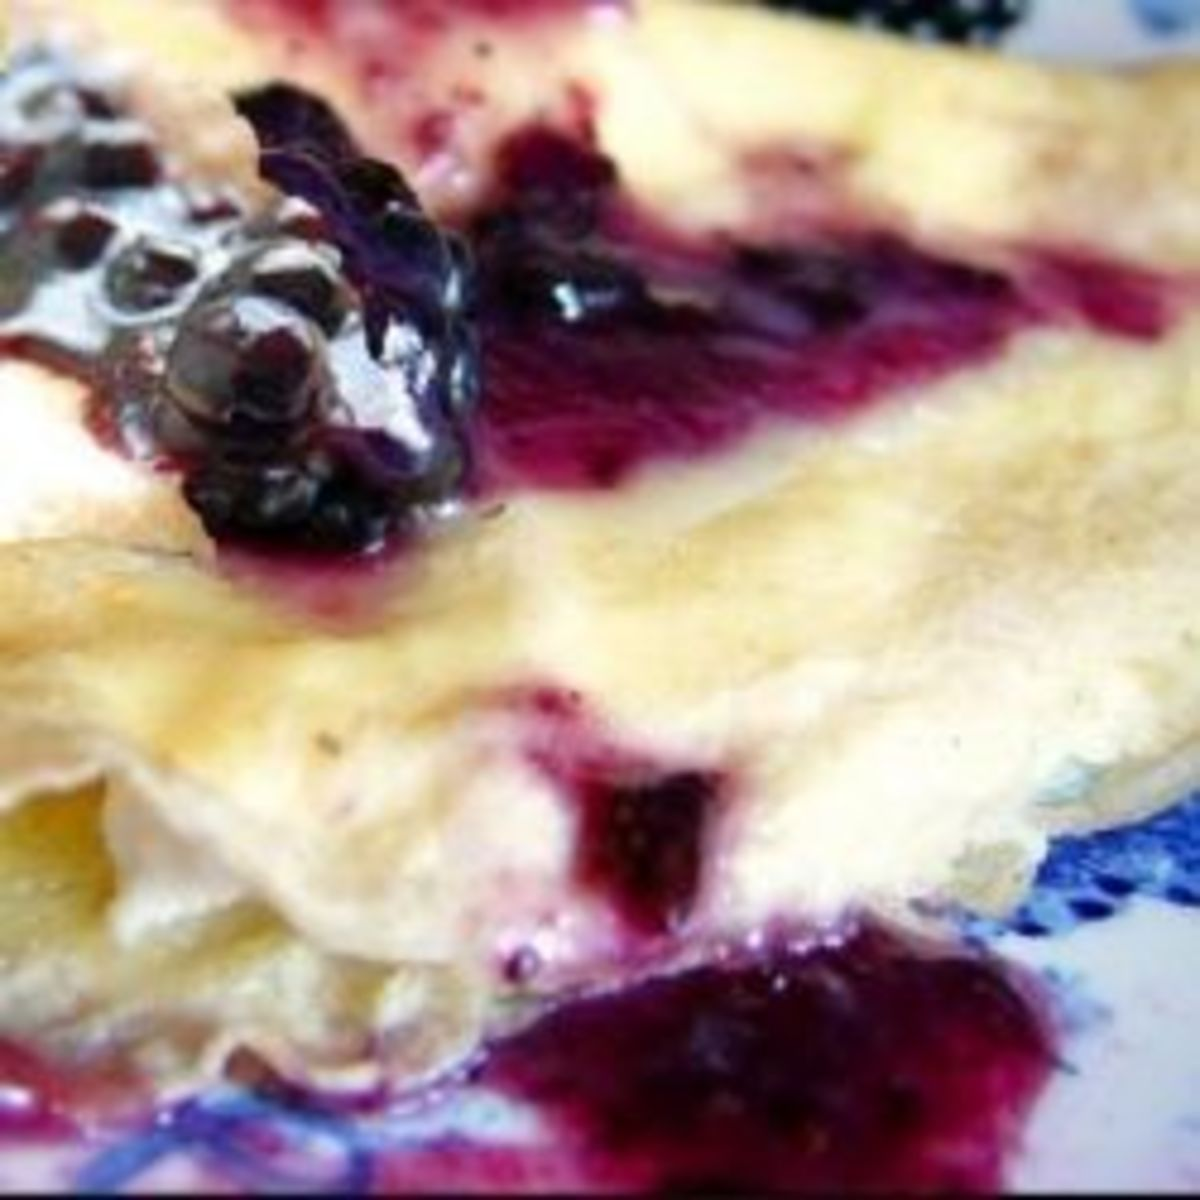 Delicious Blueberry blintzes made with paper thin crepes and a dollop of cream.